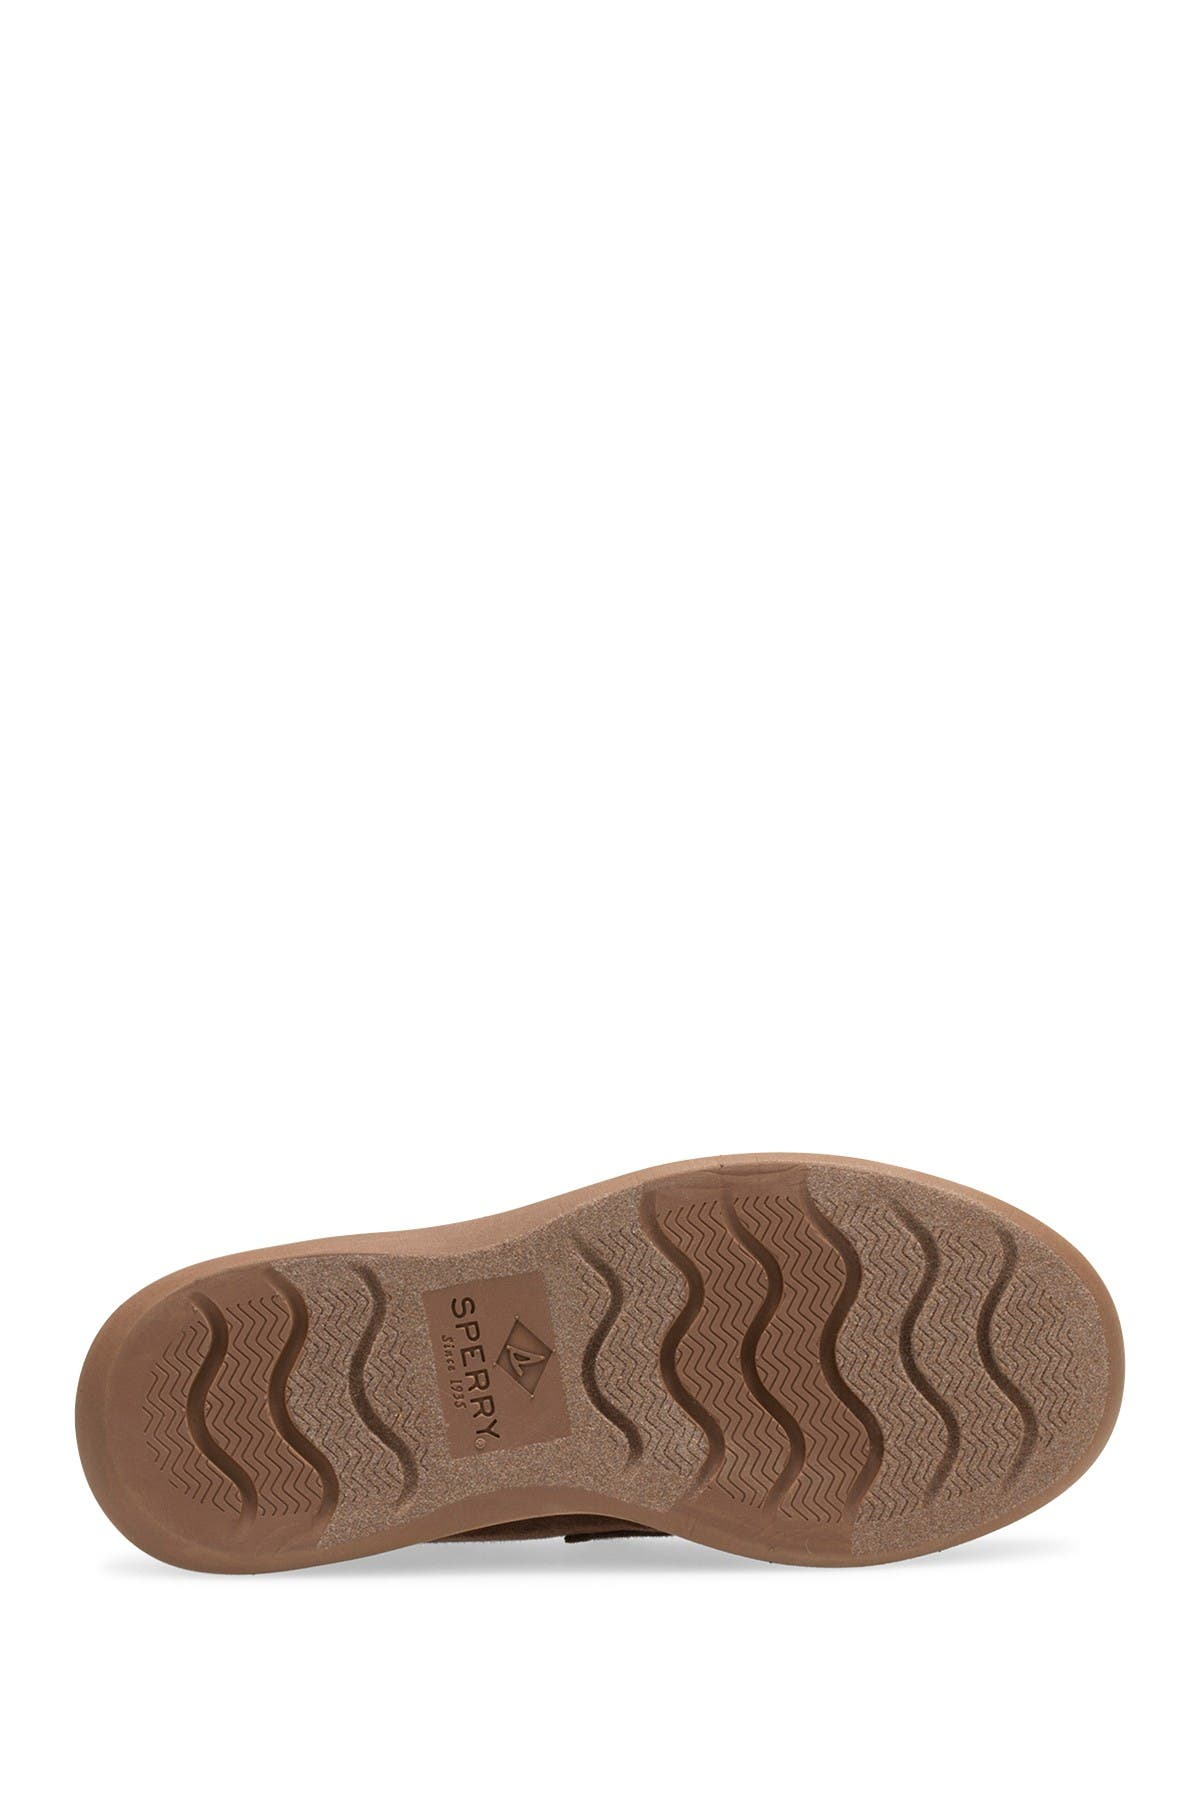 Image of Sperry Capstan Penny Loafer